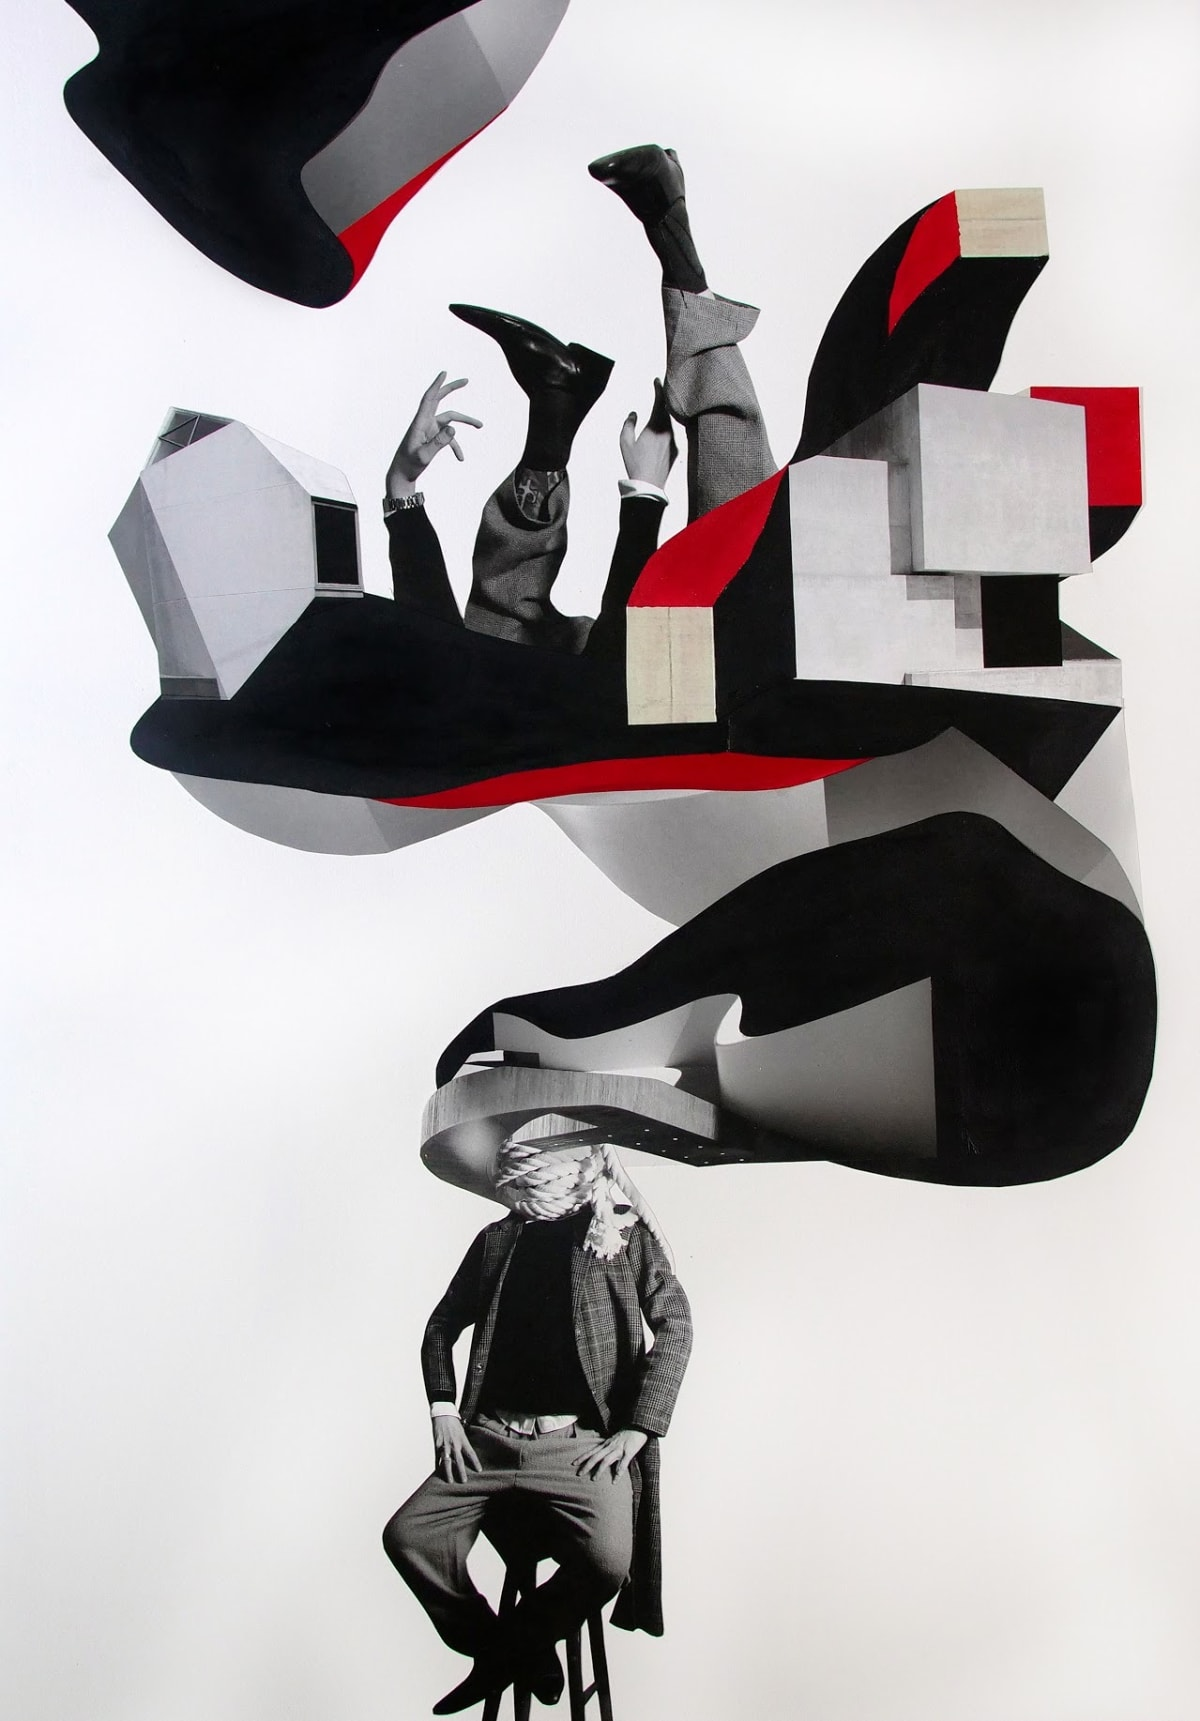 Gustavo Amaral Todas as vezesque eu marquei de me encontrar eu esperei, 2019 Collage on Paper 70 x 100 cm 27 1/2 x 39 3/8 in